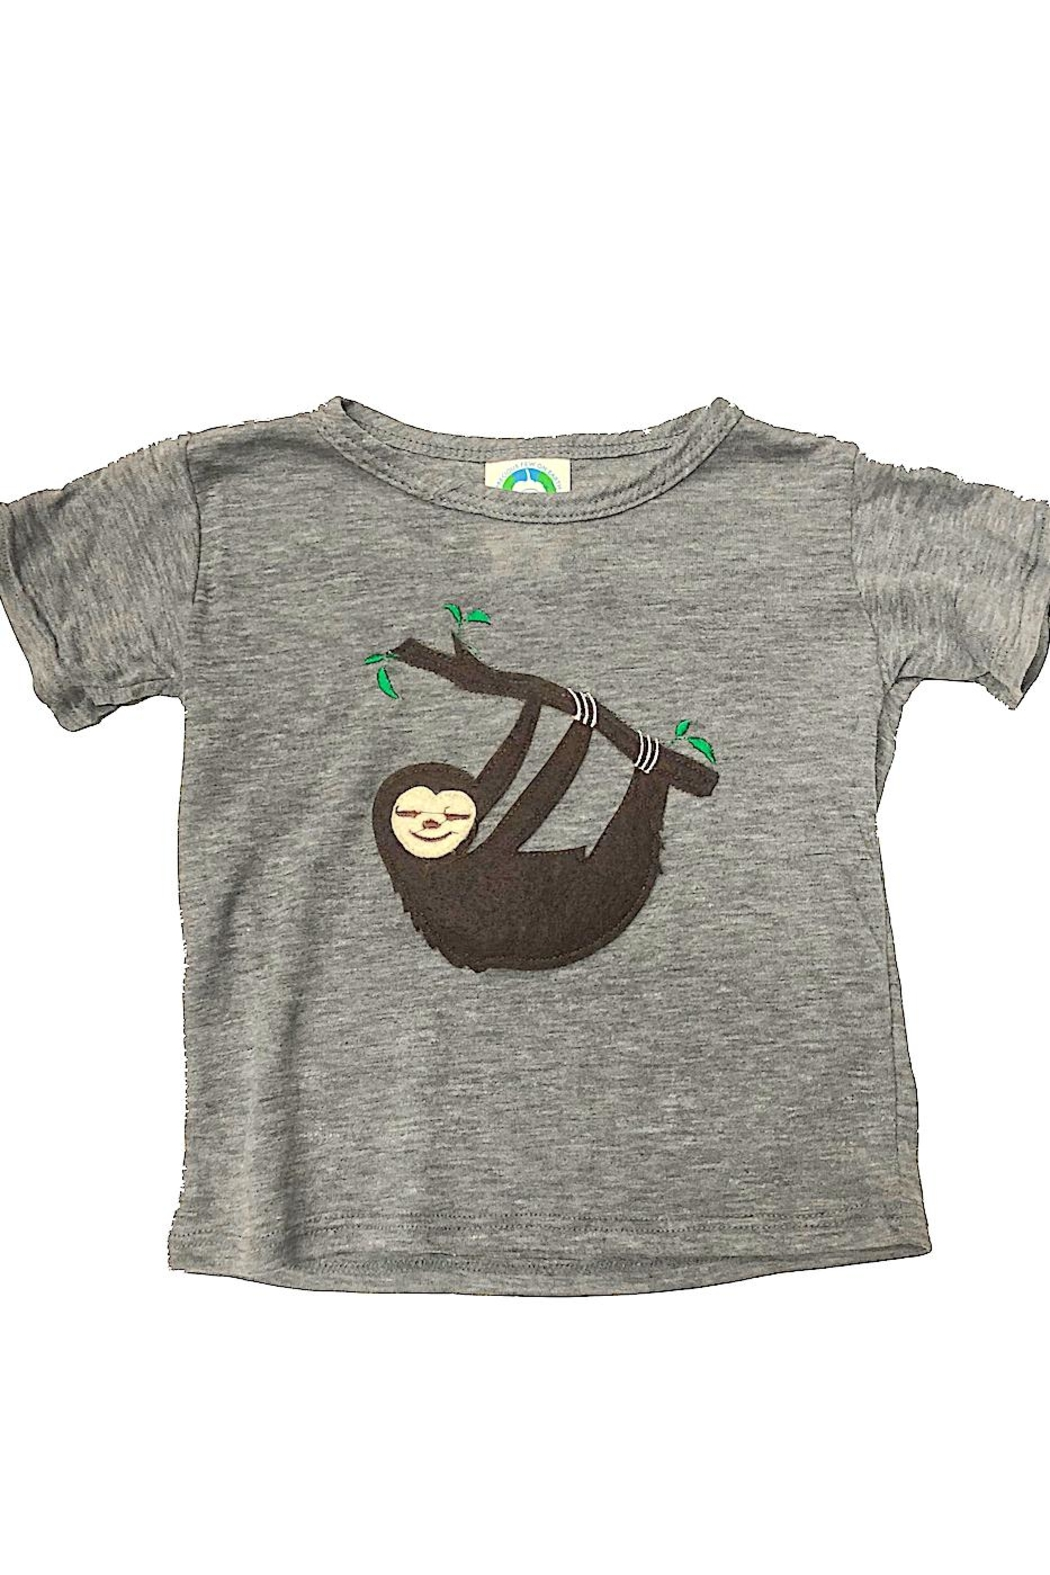 Precious Few on Earth Gray Sloth T-Shirt - Front Cropped Image